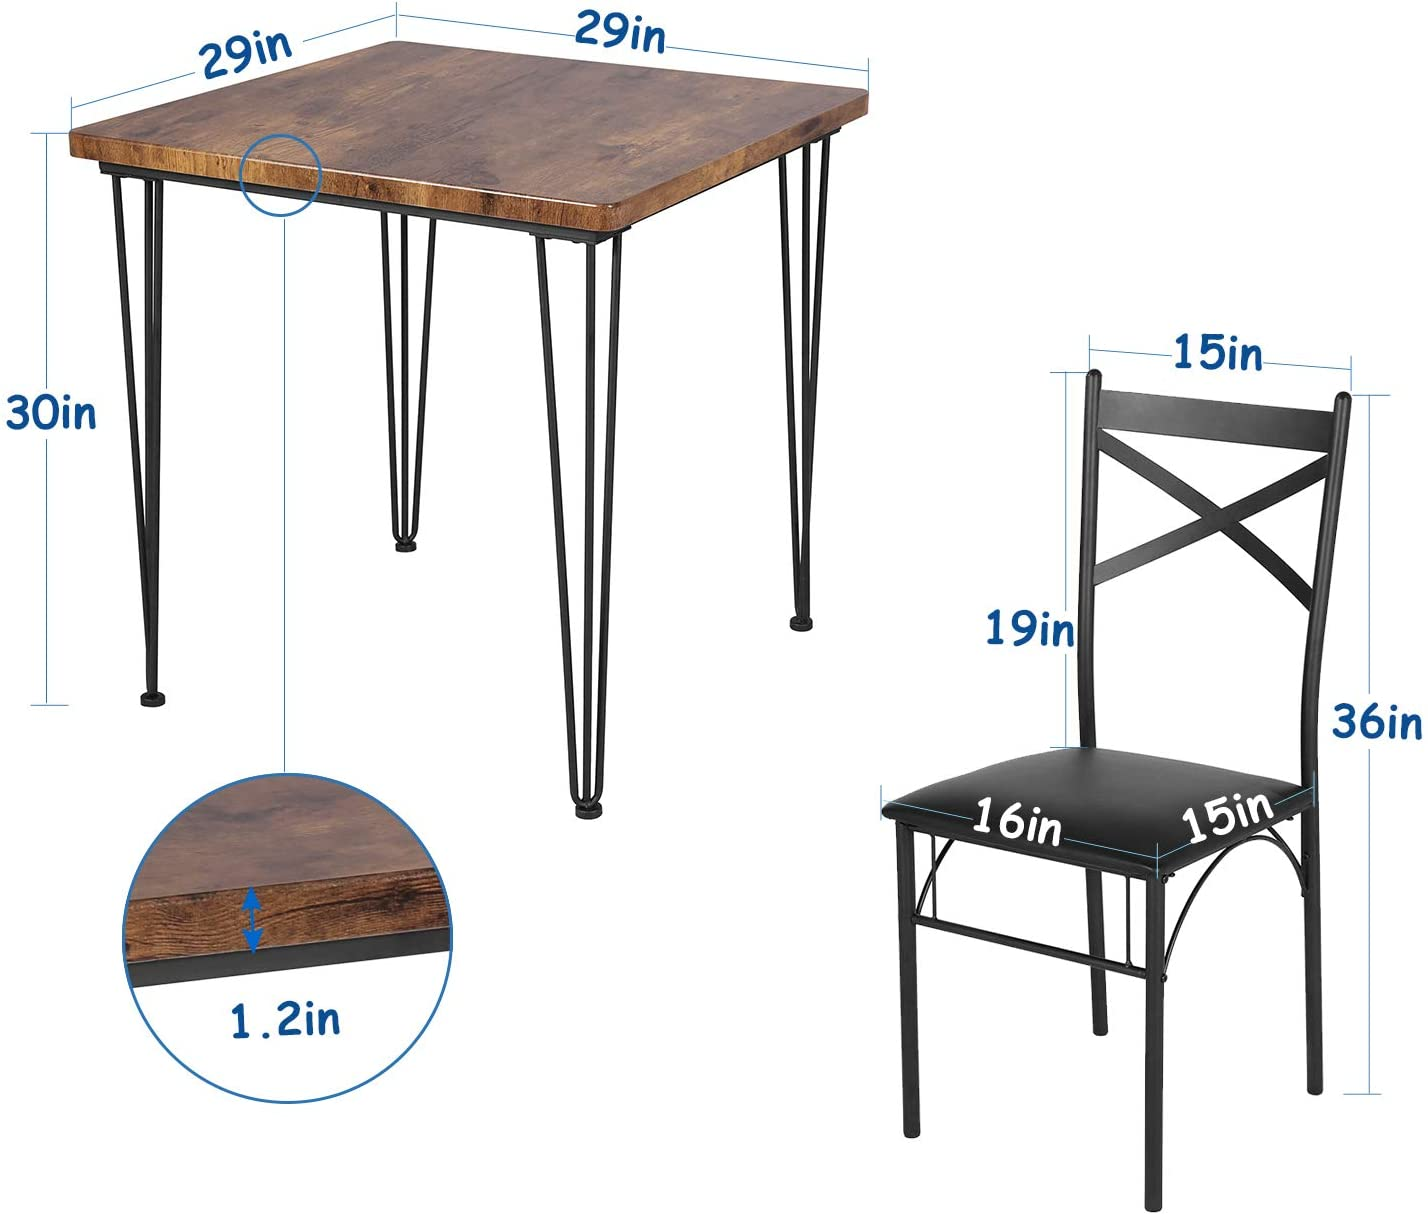 VECELO Dining Set Industrial Style 3 Pieces Kitchen Wood Table 2 Chairs with Metal Legs,Retro Brown and Black - Table & Chair Sets